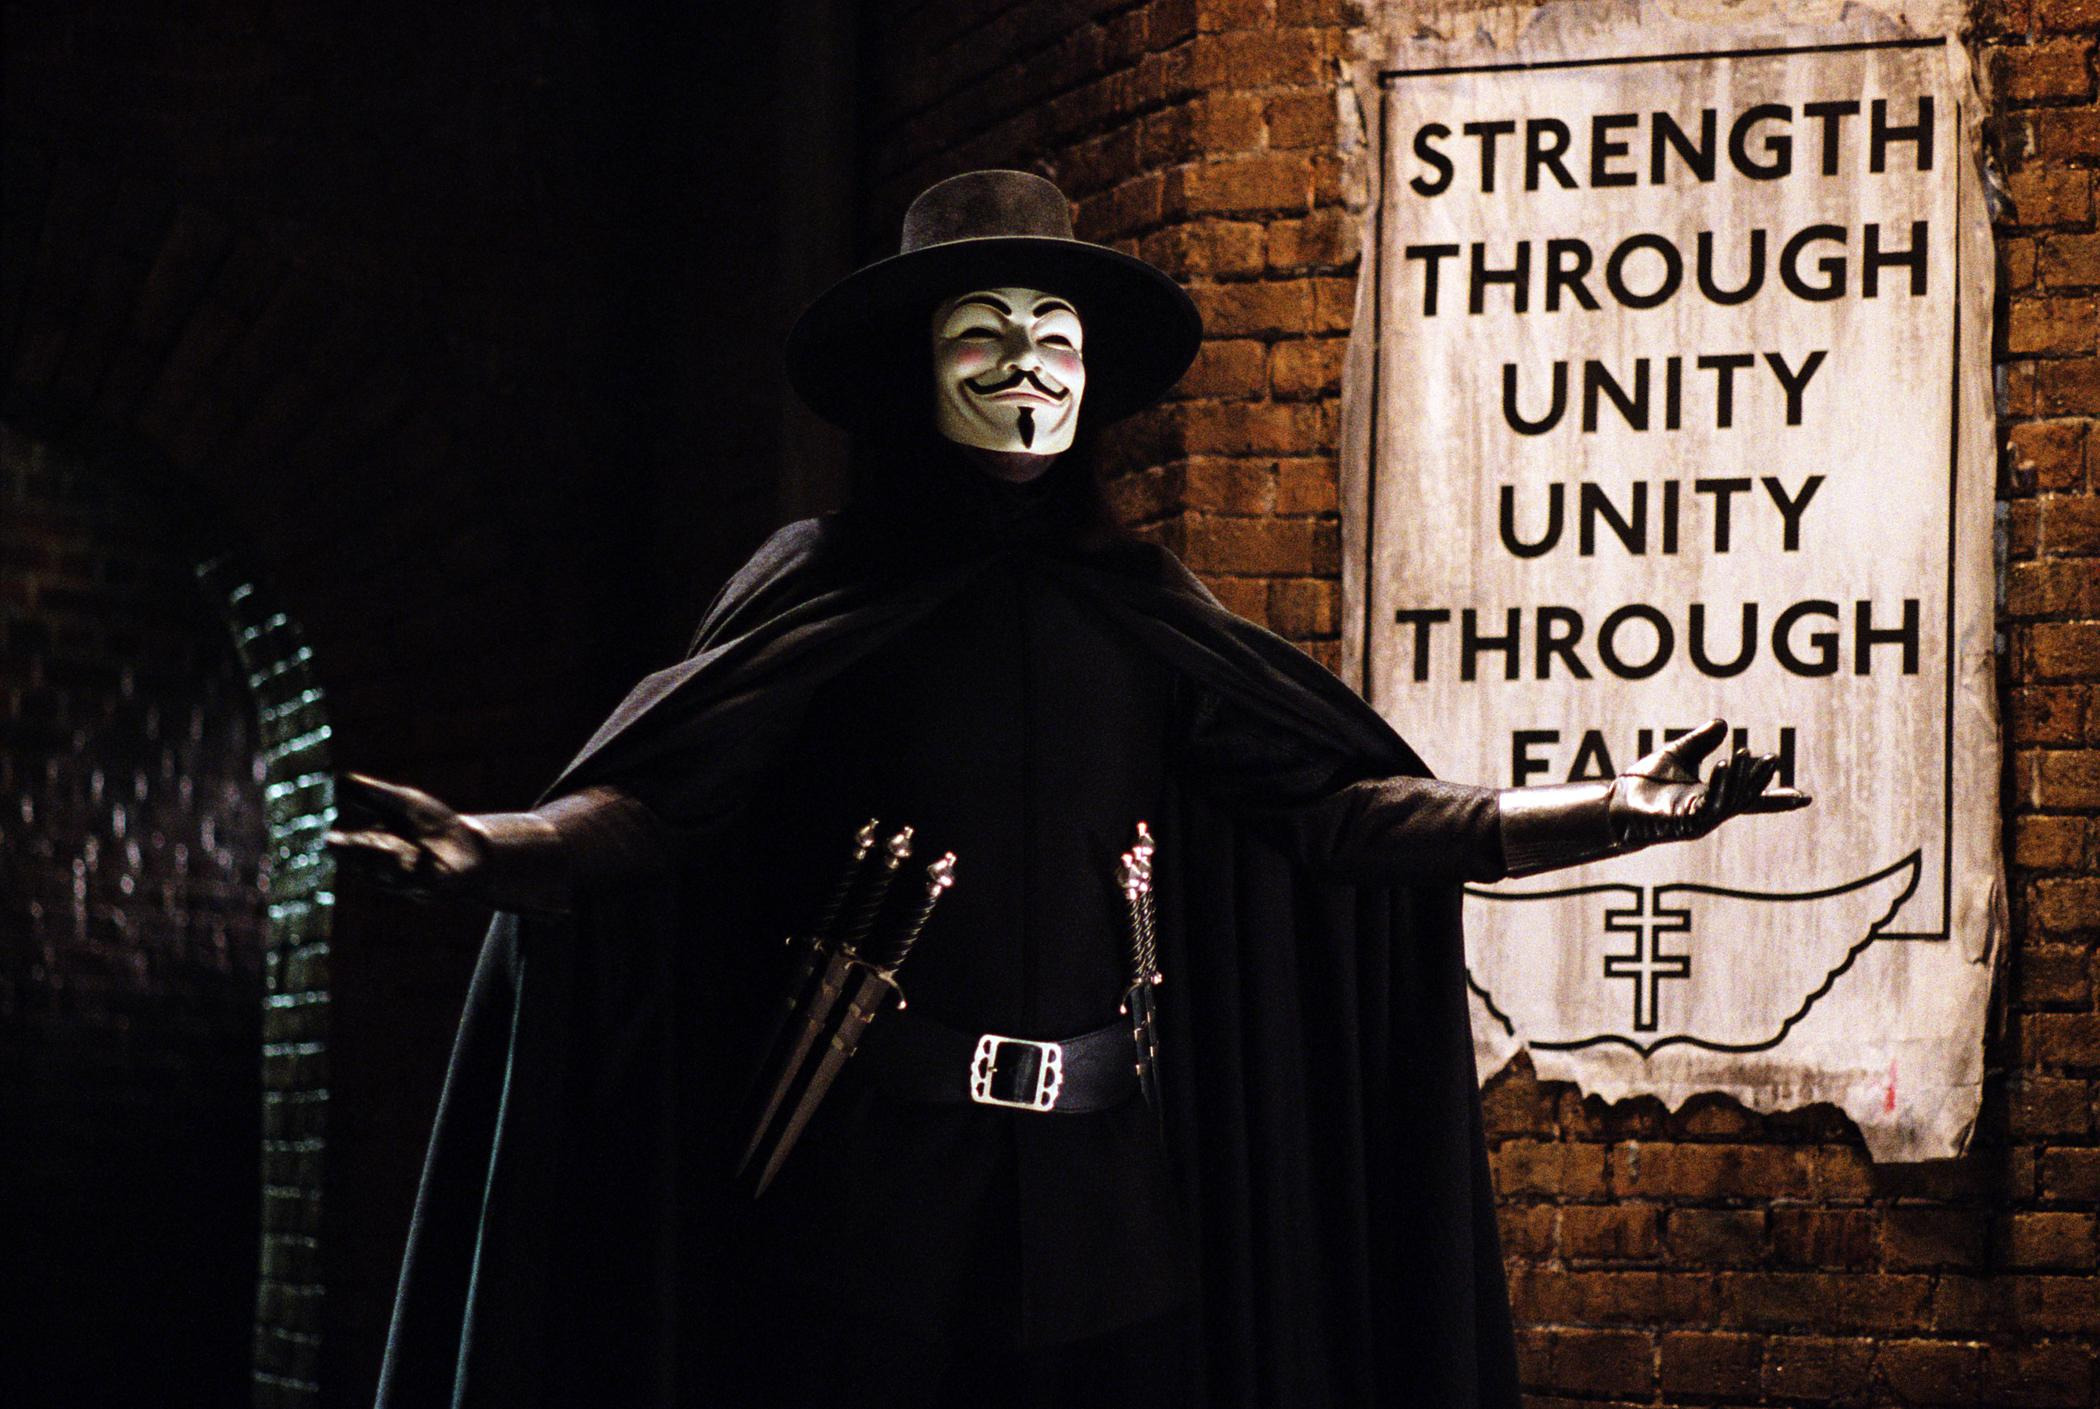 Hack ta démocratie - James McTeigue, V for Vendetta, 2006 - Manifesto XXI